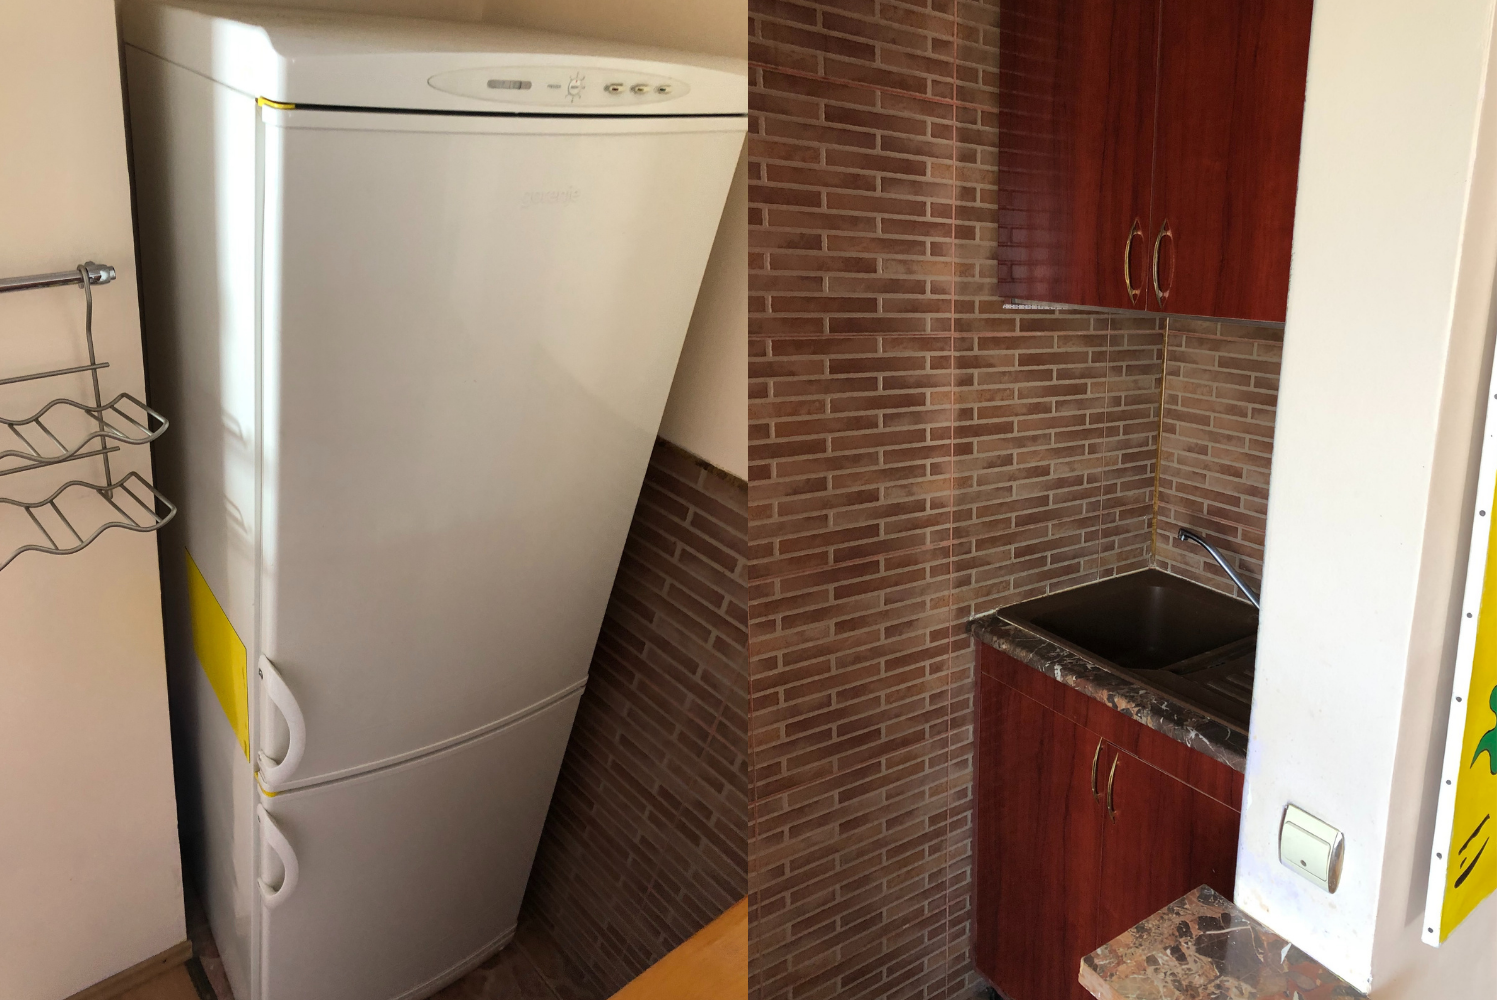 Renovare apartament Aviatiei - before and after _ Arh. Cristiana Zgripcea (13)